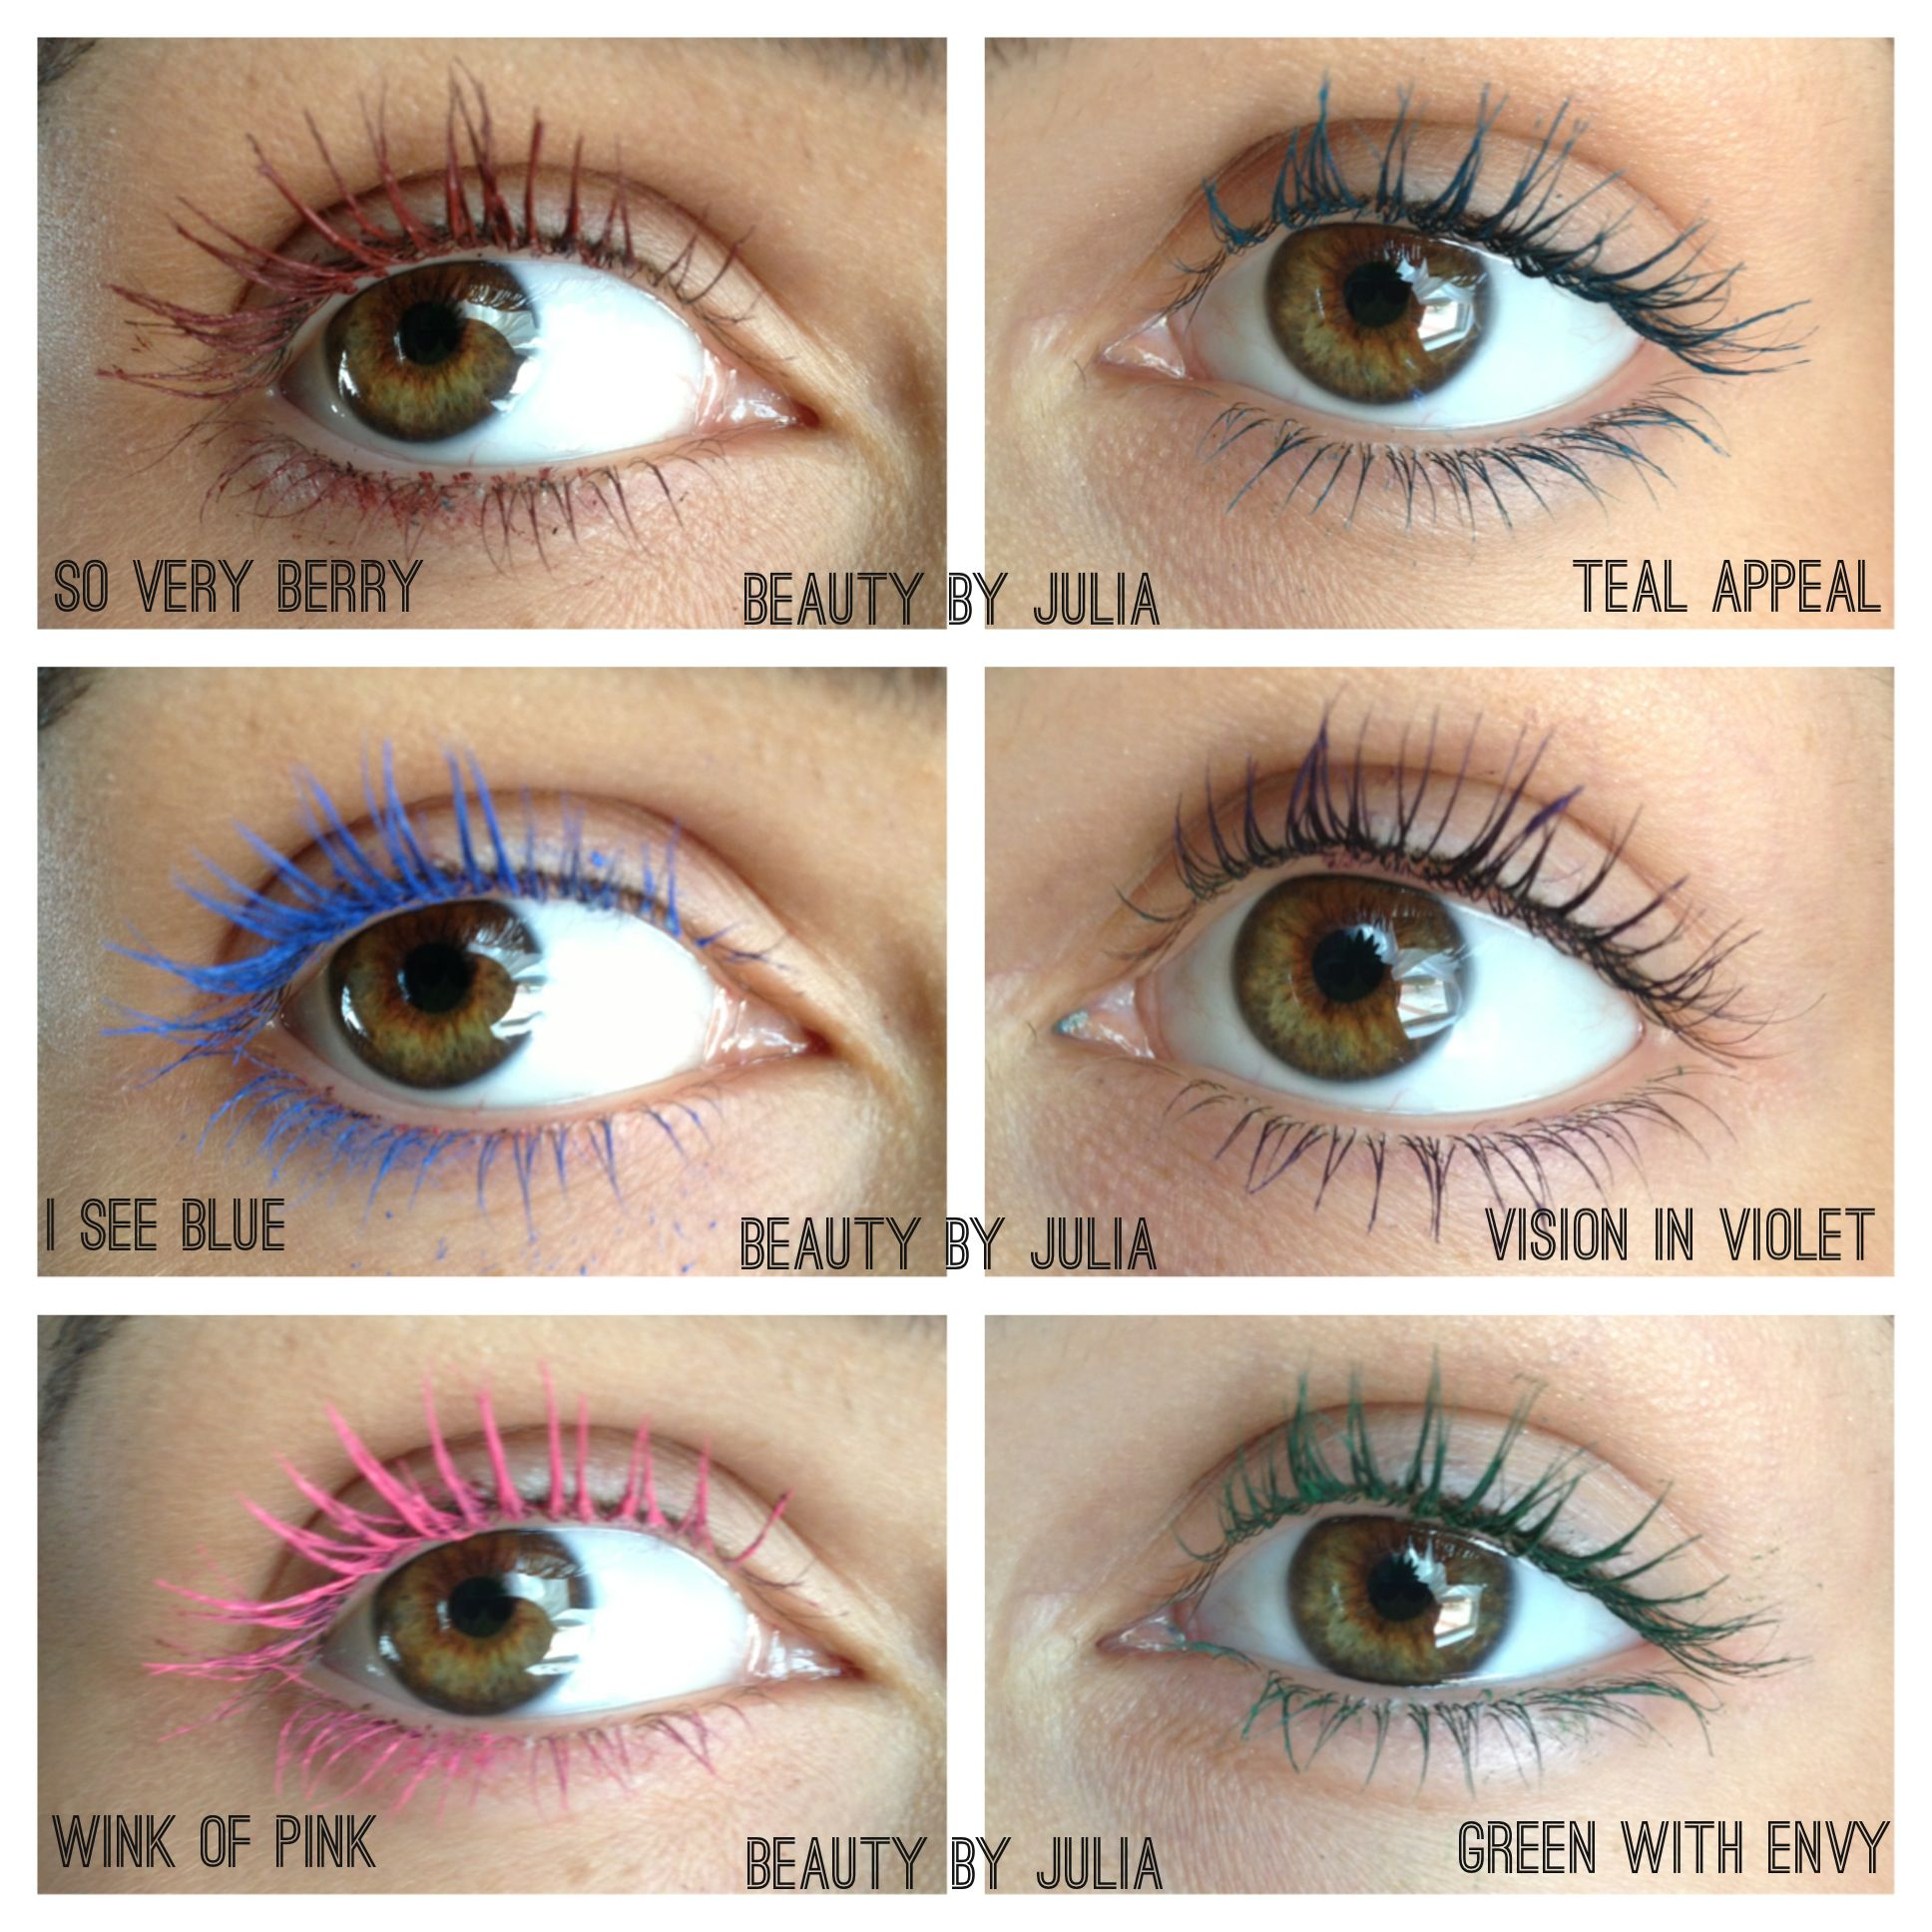 6e8c295246a NEW maybelline colored mascara! - could this ever look non-circus??? Hmm